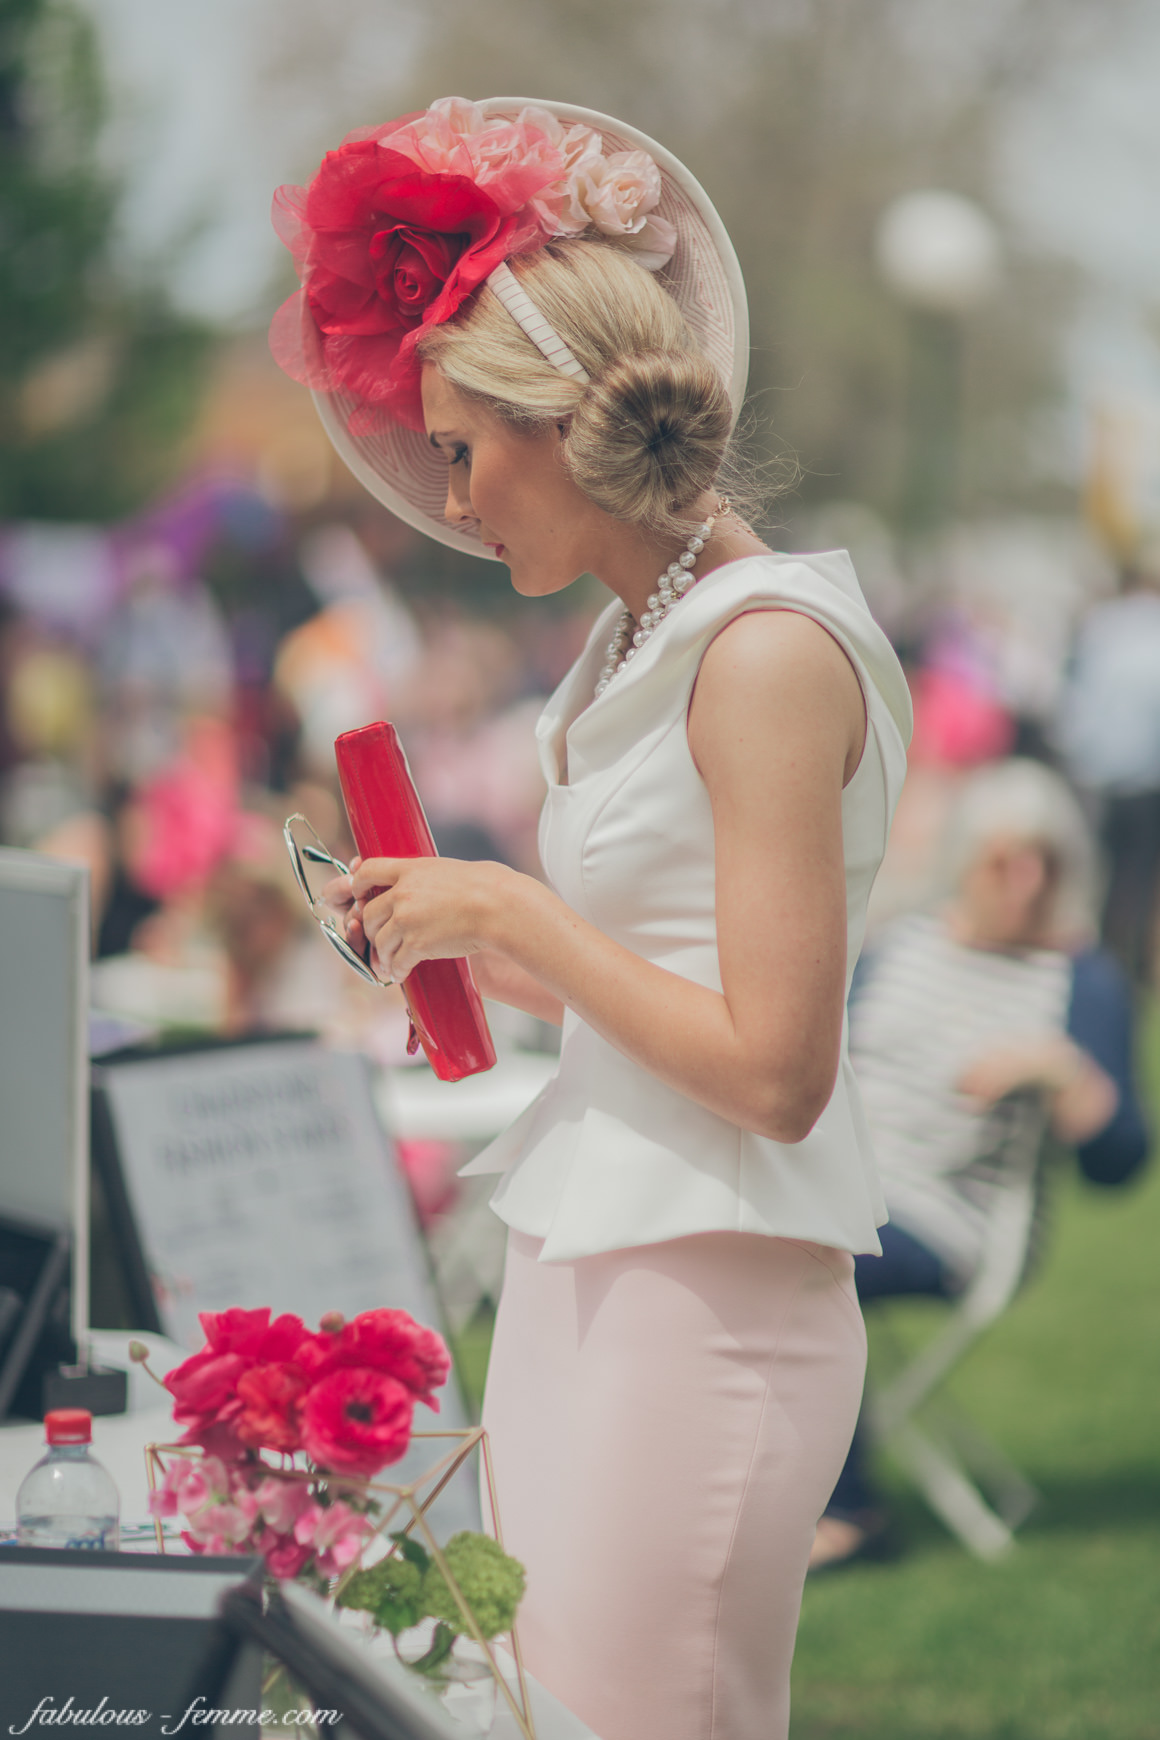 entering the fashions on the field in 2014 at Caulfield